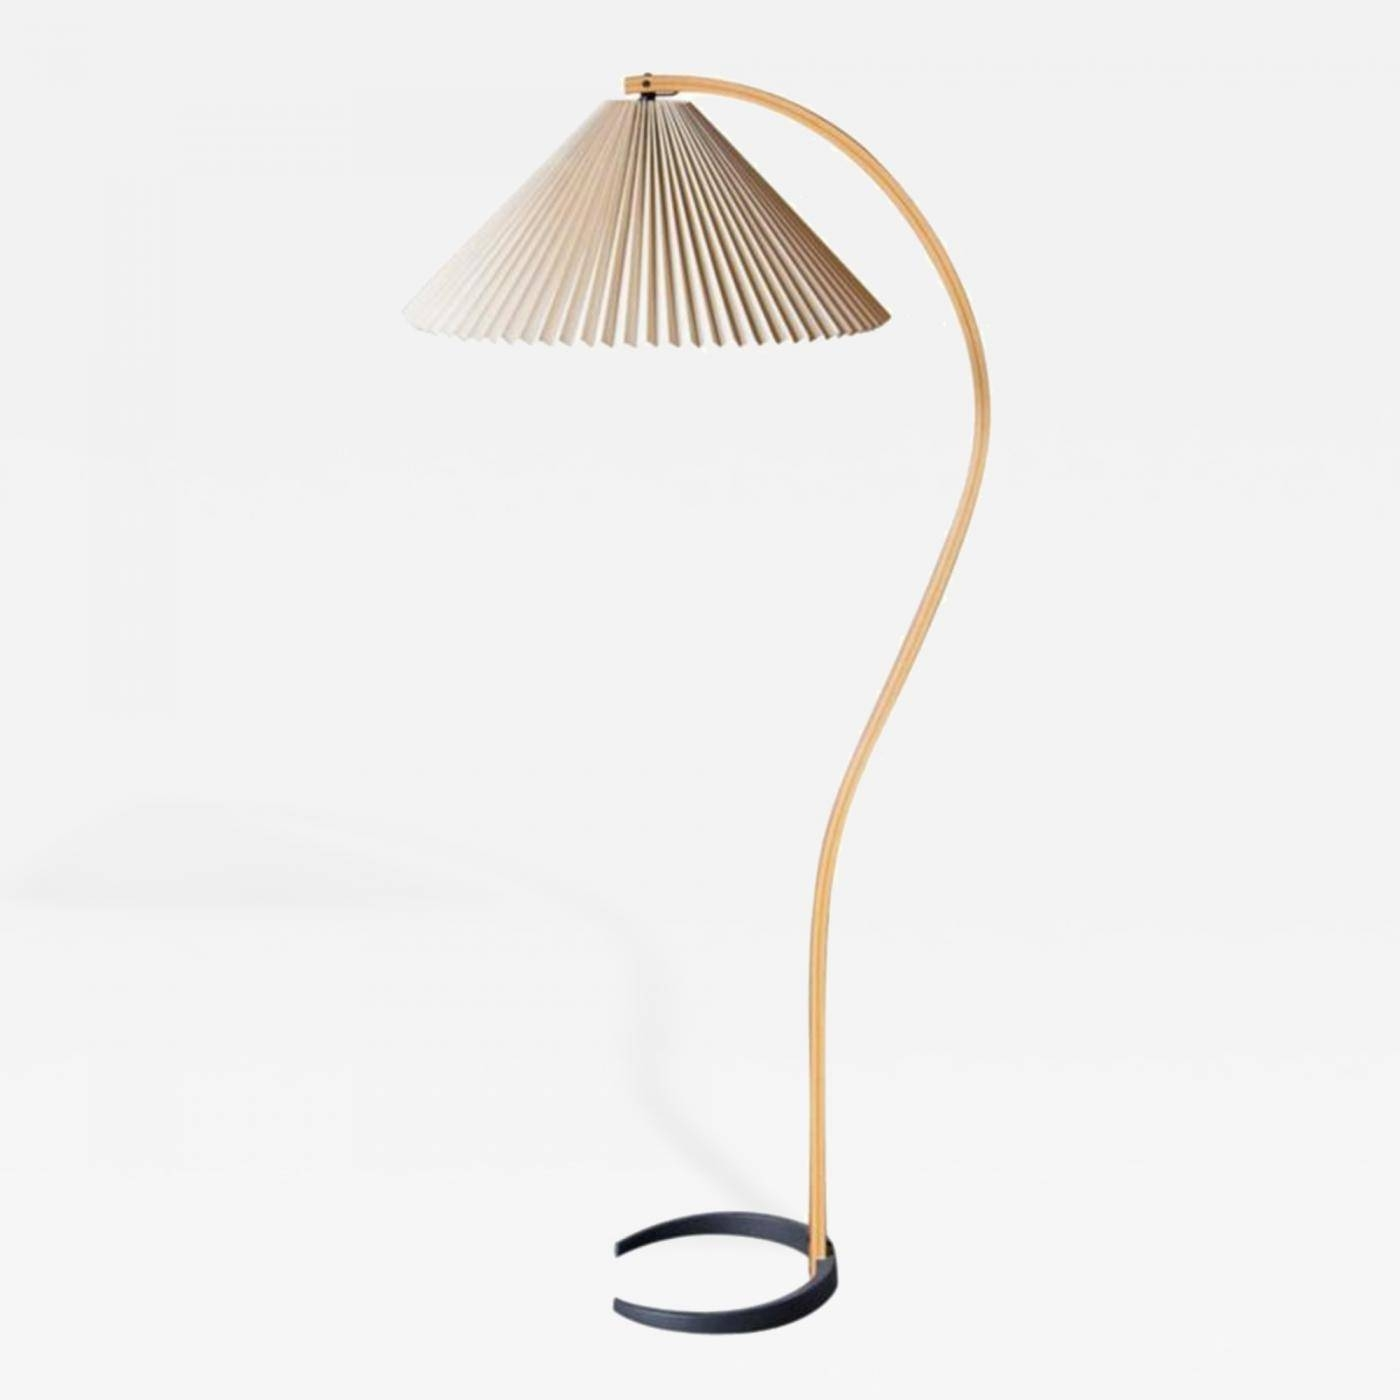 Caprani Light A/s - Caprani Light As Bentwood Floor Lamp pertaining to Bentwood Lighting (Image 3 of 15)